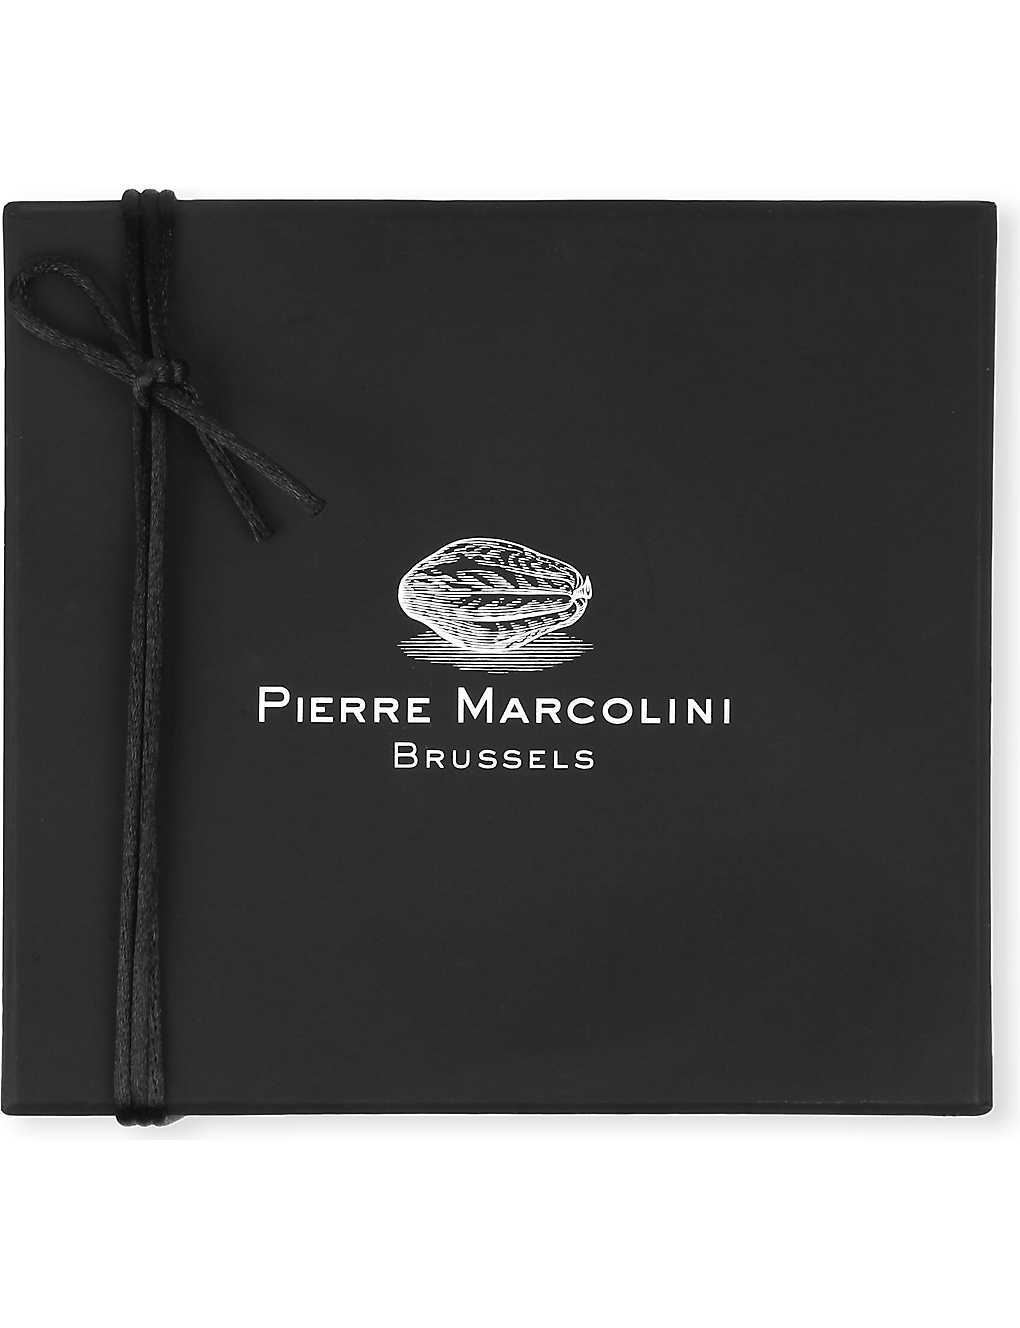 Pierre marcolini christmas chocolate gifts